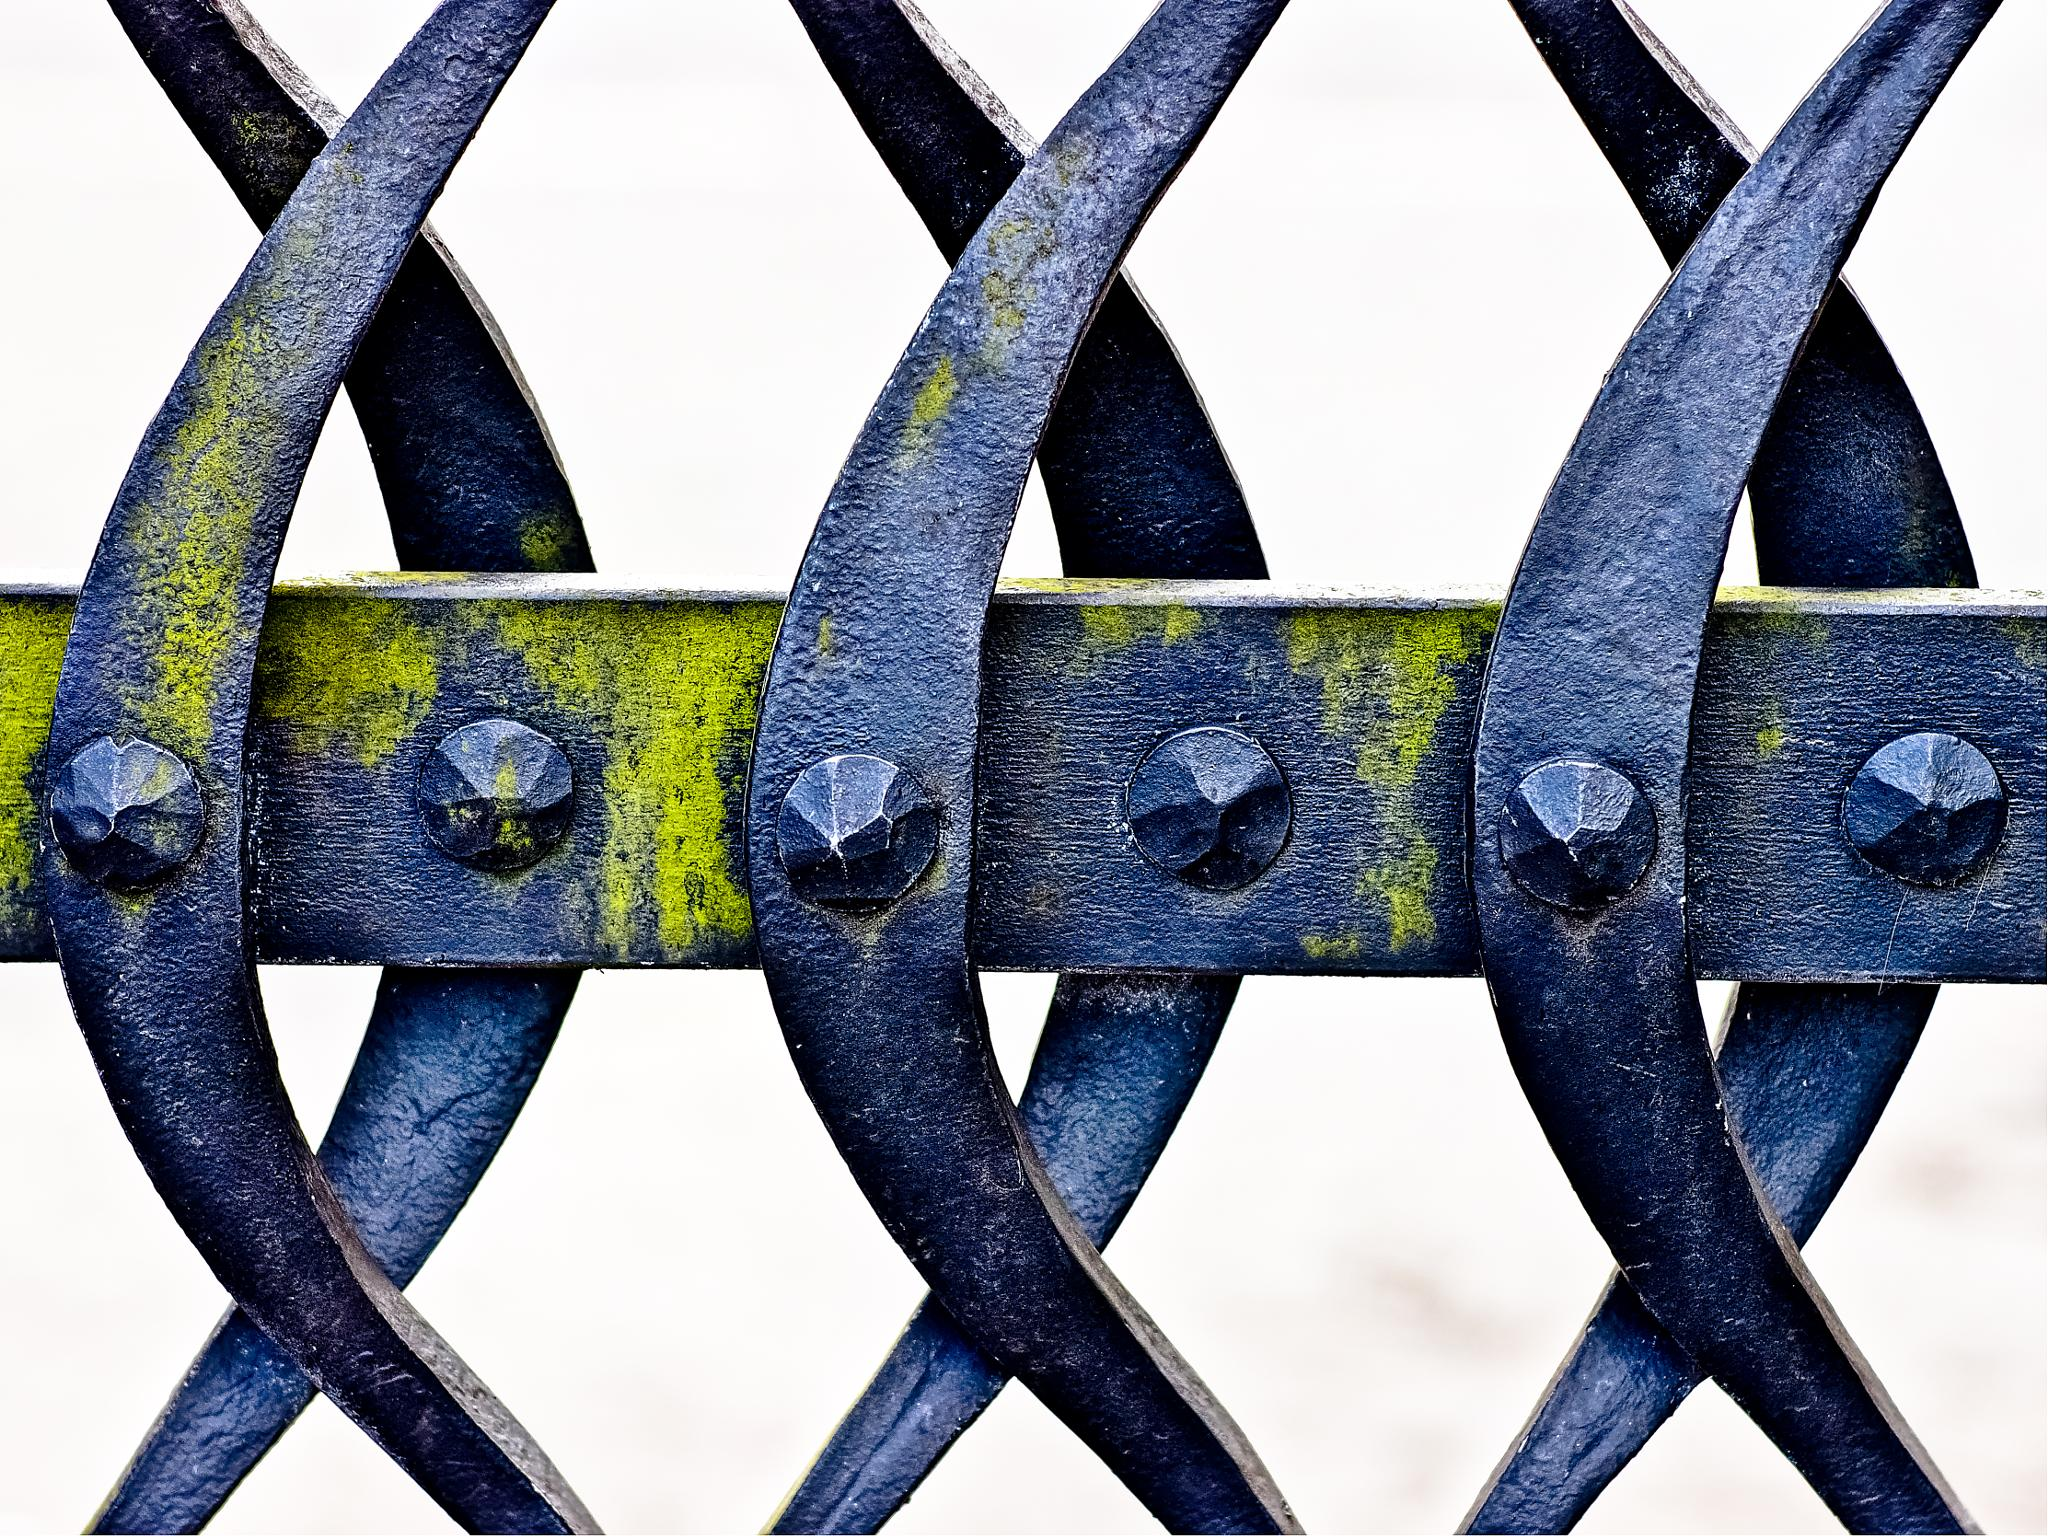 Iron work gate by Peter Edwardo Vicente.